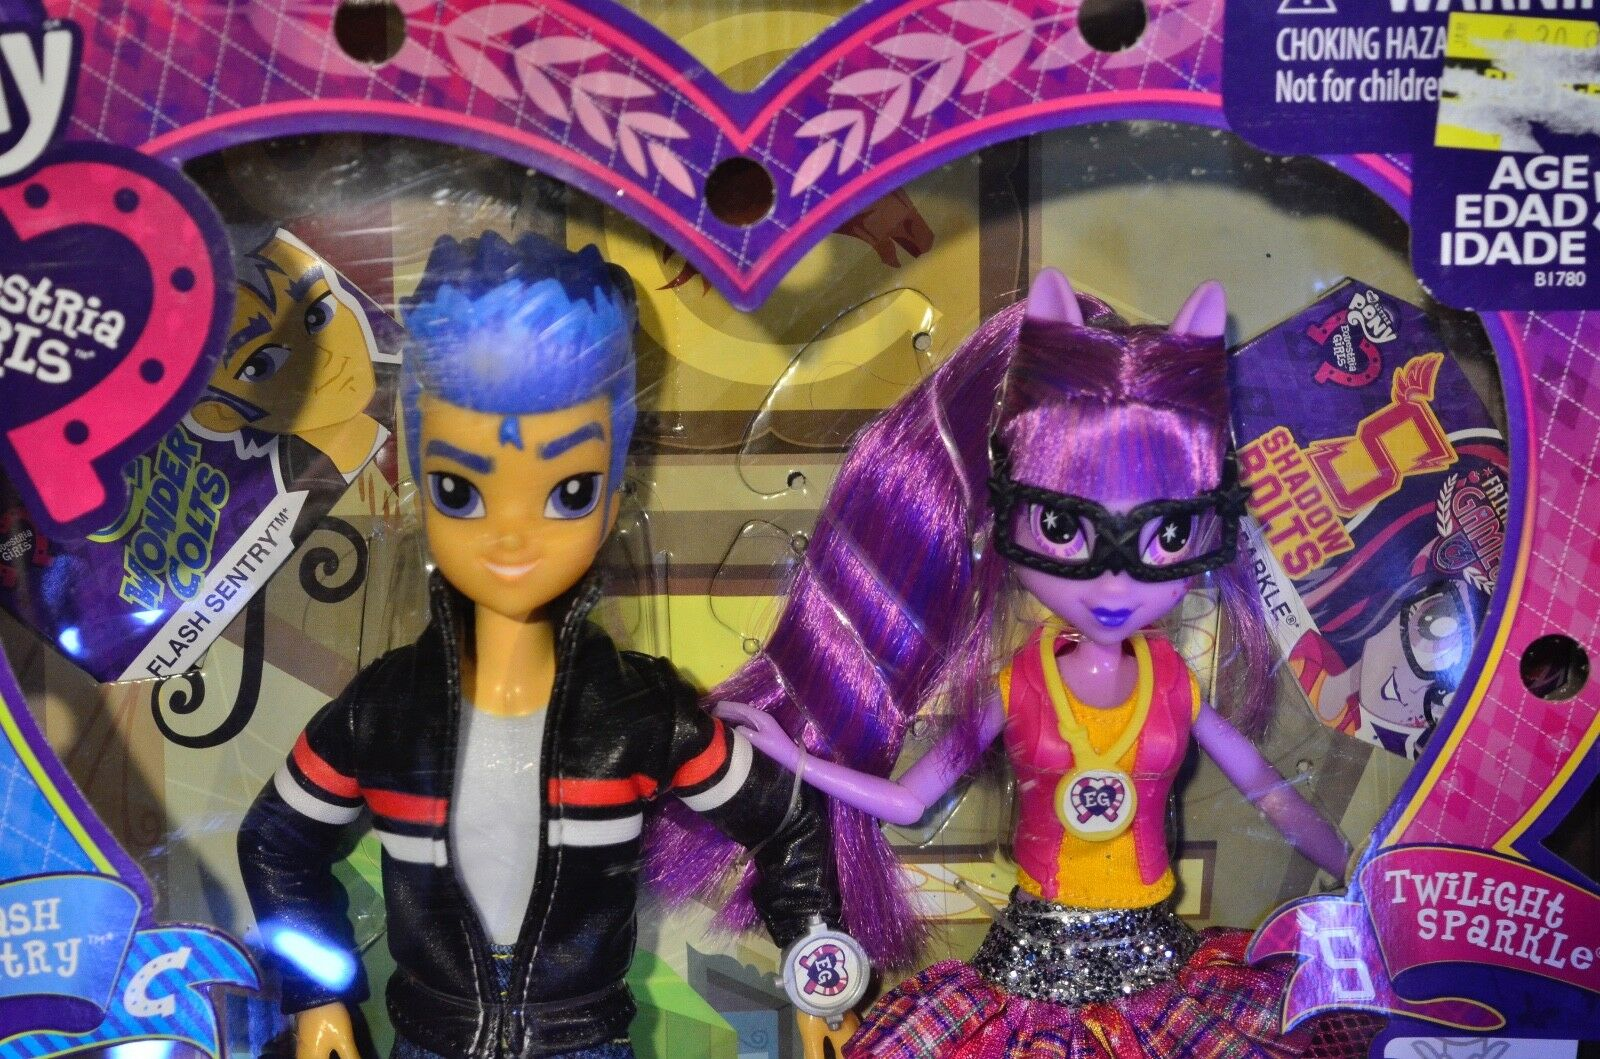 My Little Pony Equestria Girls Flash Sentry and Twilight Sparkle 2 Doll Gift Set